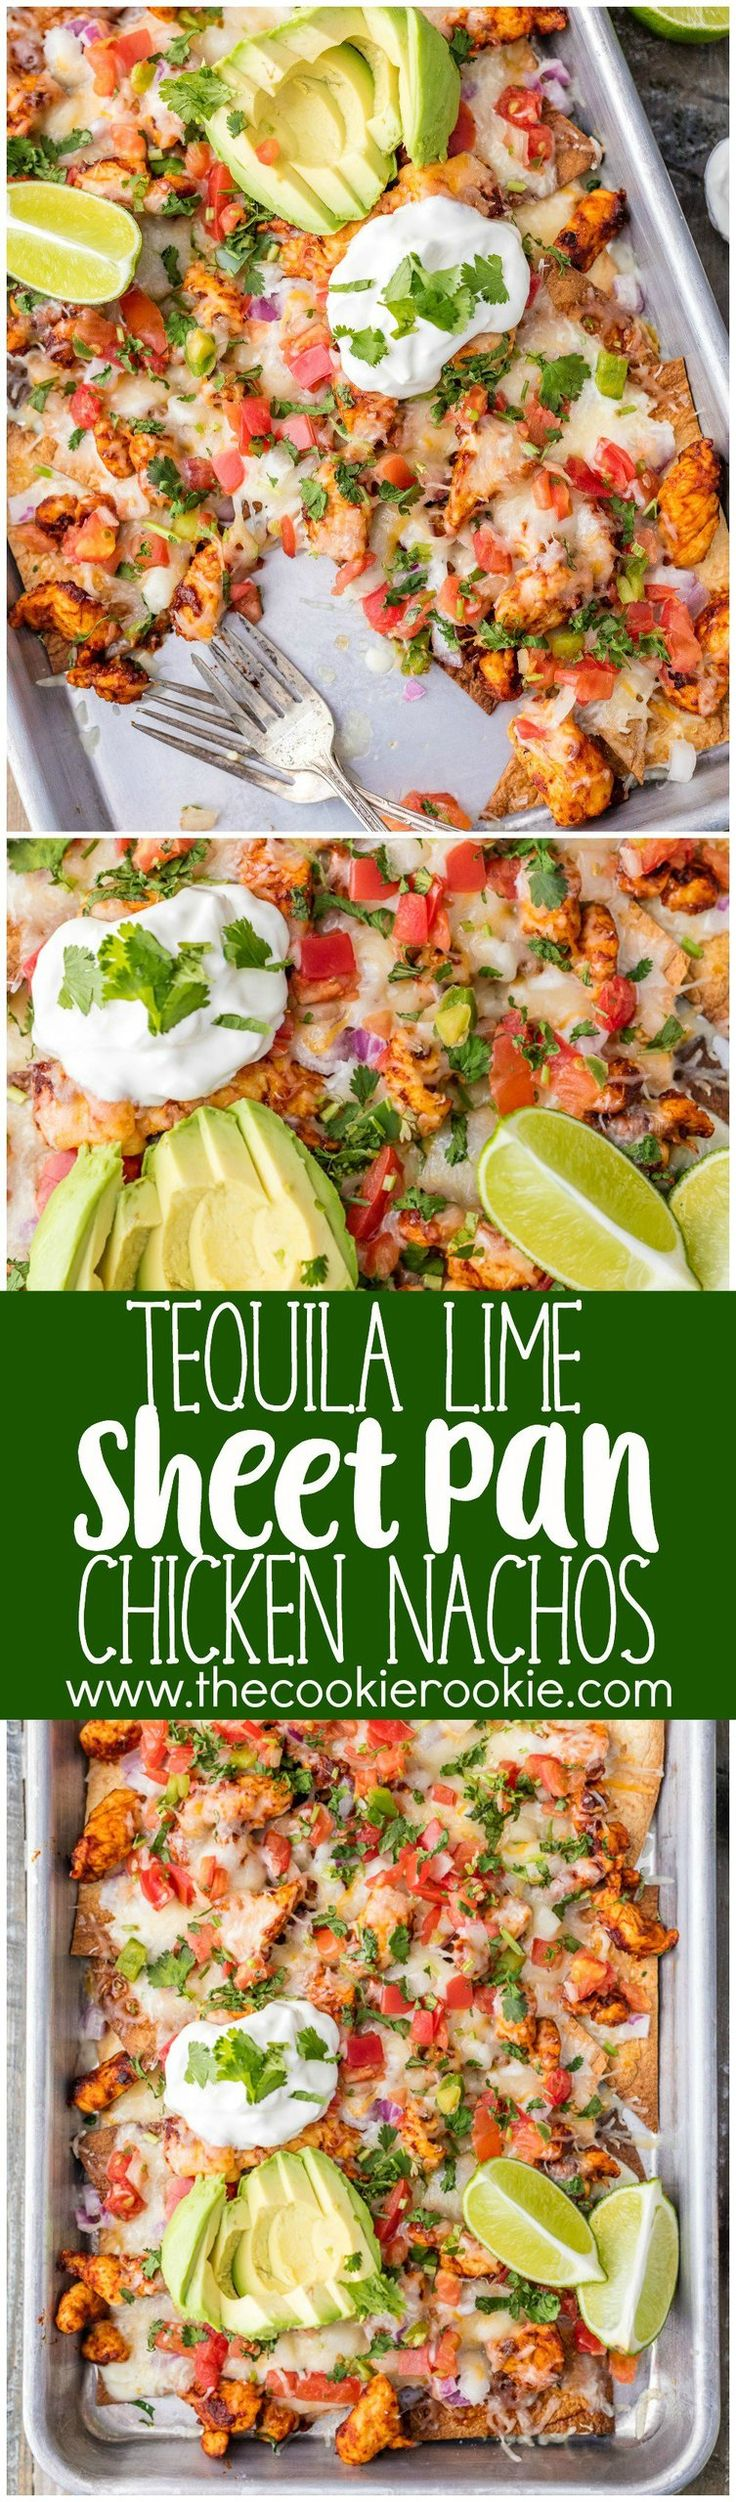 The bloggers over at Cookie Rookie are definitely no rookies (or slouches) in the nacho department! It's the perfect party nacho recipe with Tequila, Lime, and Chicken, giving your chip crunch a southwestern twist. Learn how to make it for a party (or just a night in).